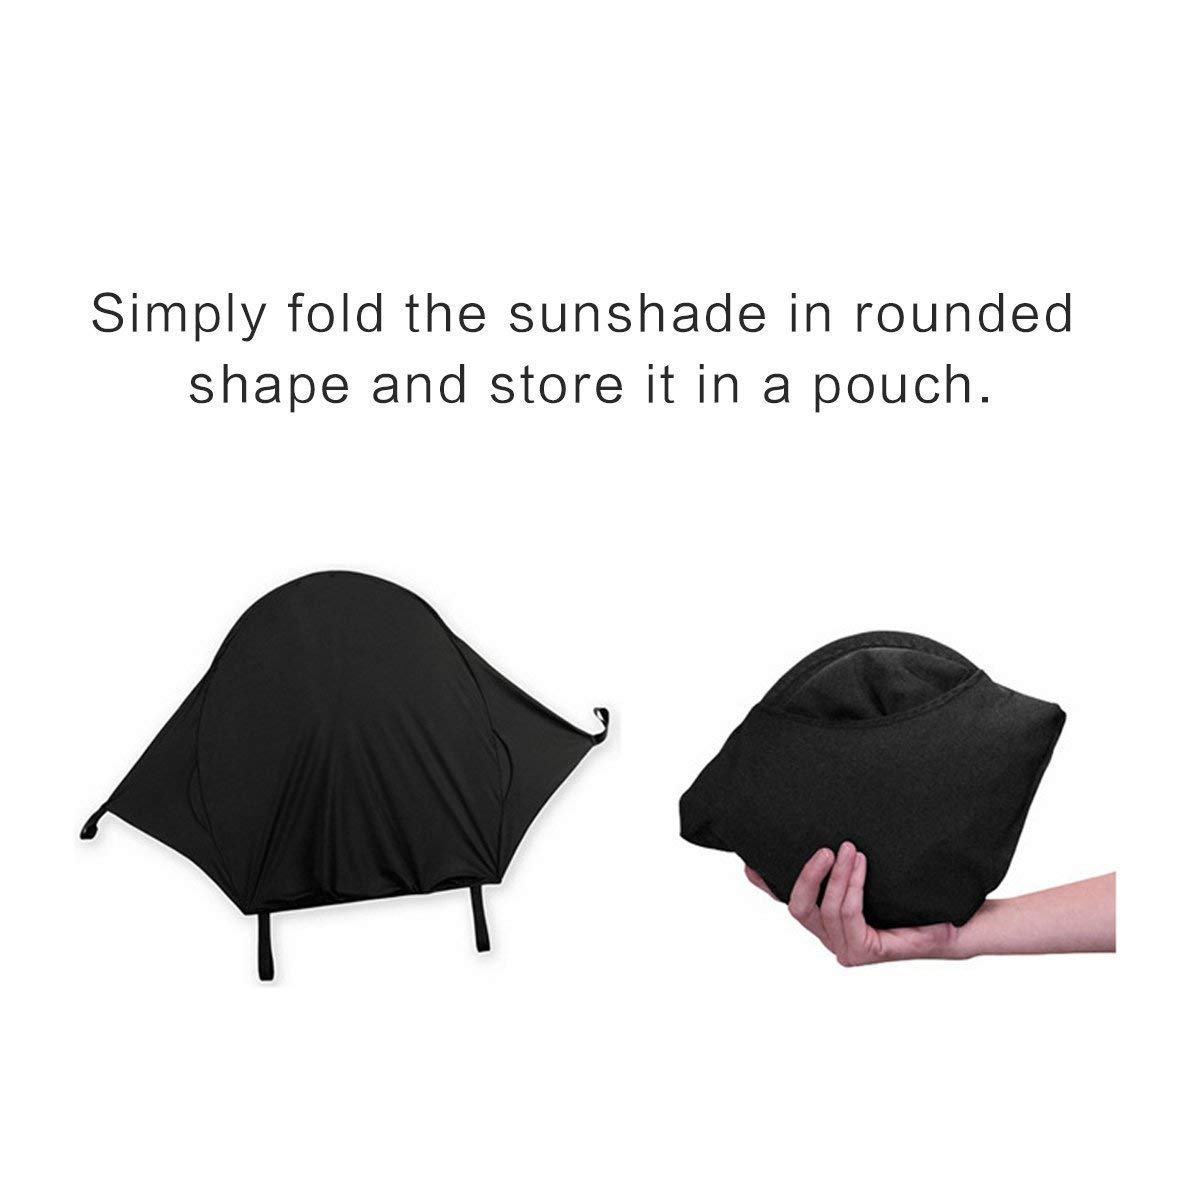 ZLMI Baby Stroller Sun Cover,Baby Carriage Awning,Infant Pushchair Sun Shade Baby Stroller Black Sun Shield Has Excellent UV Protection by ZLMI (Image #4)